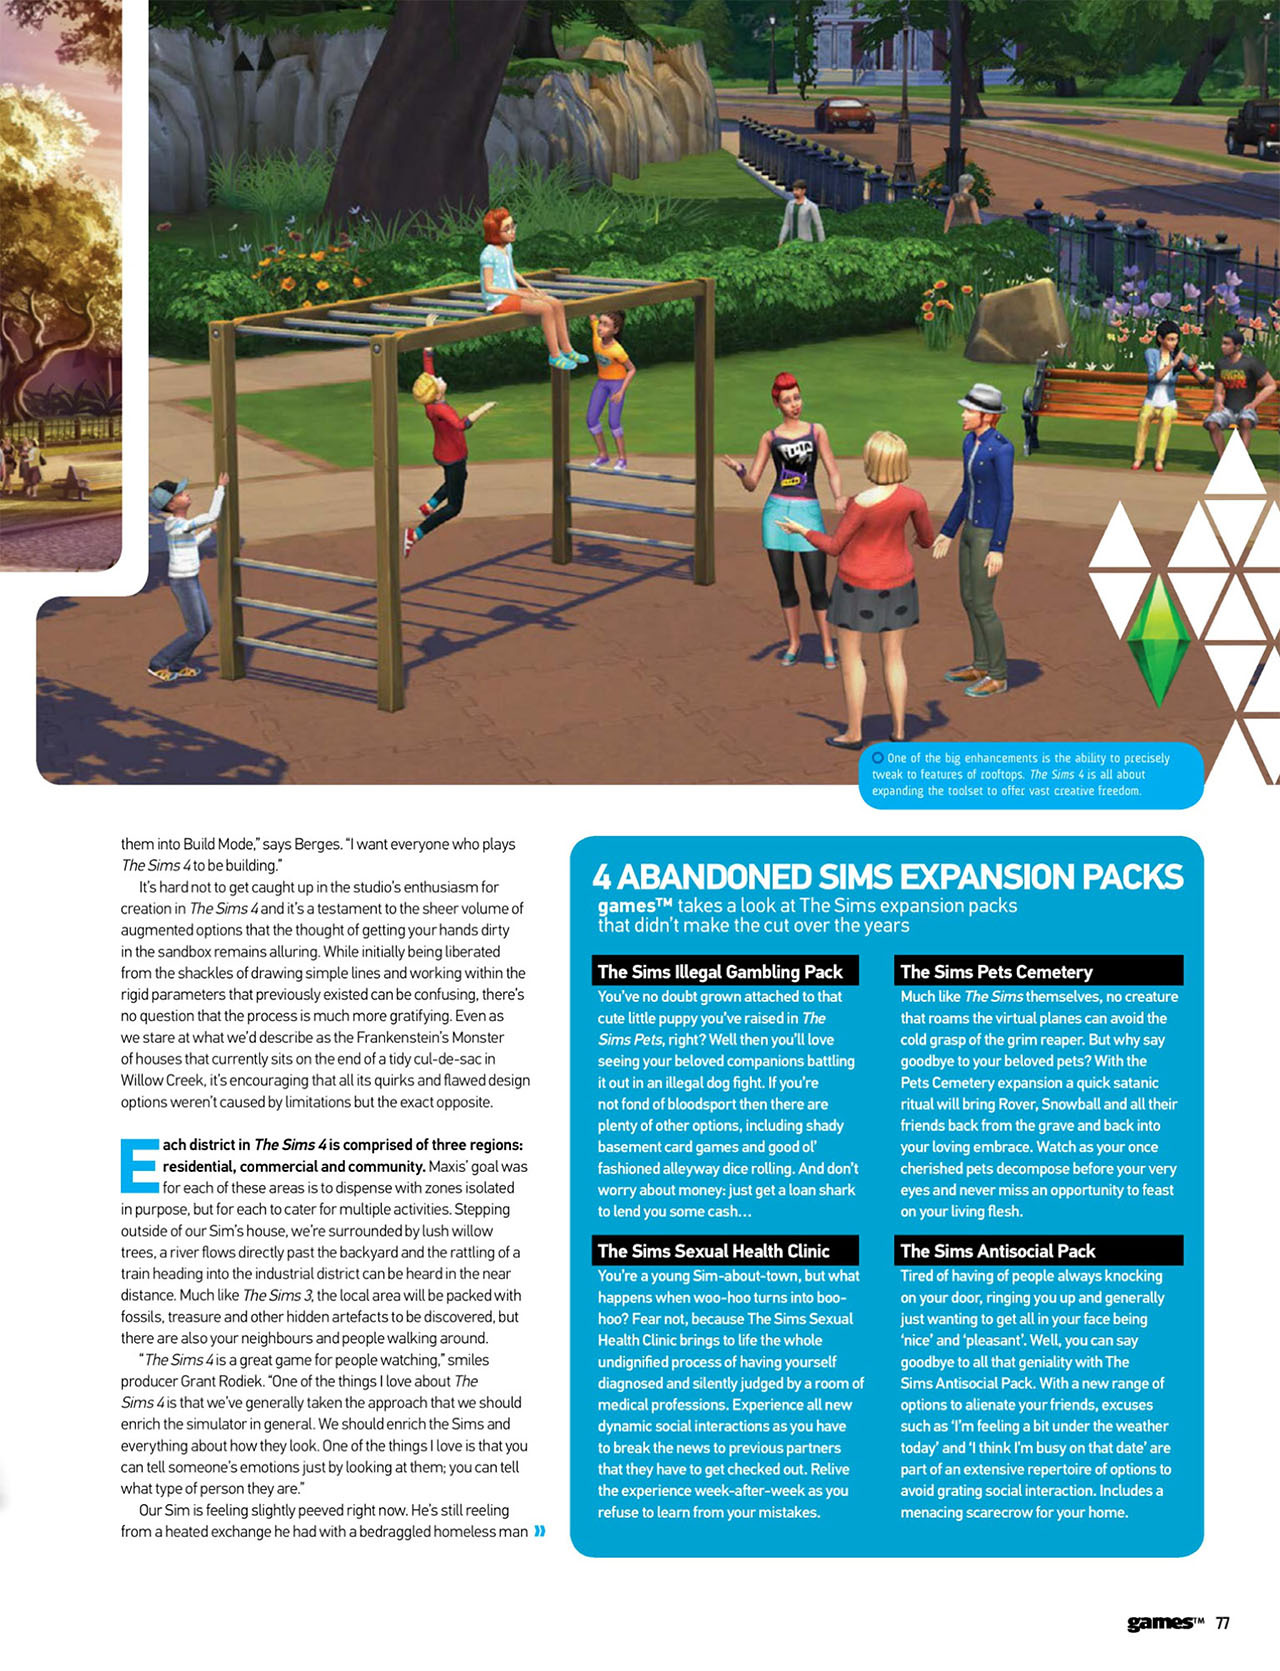 Honeywell S Sims 4 News Blog Gamestm Preview The Sims 4 Life In A Day